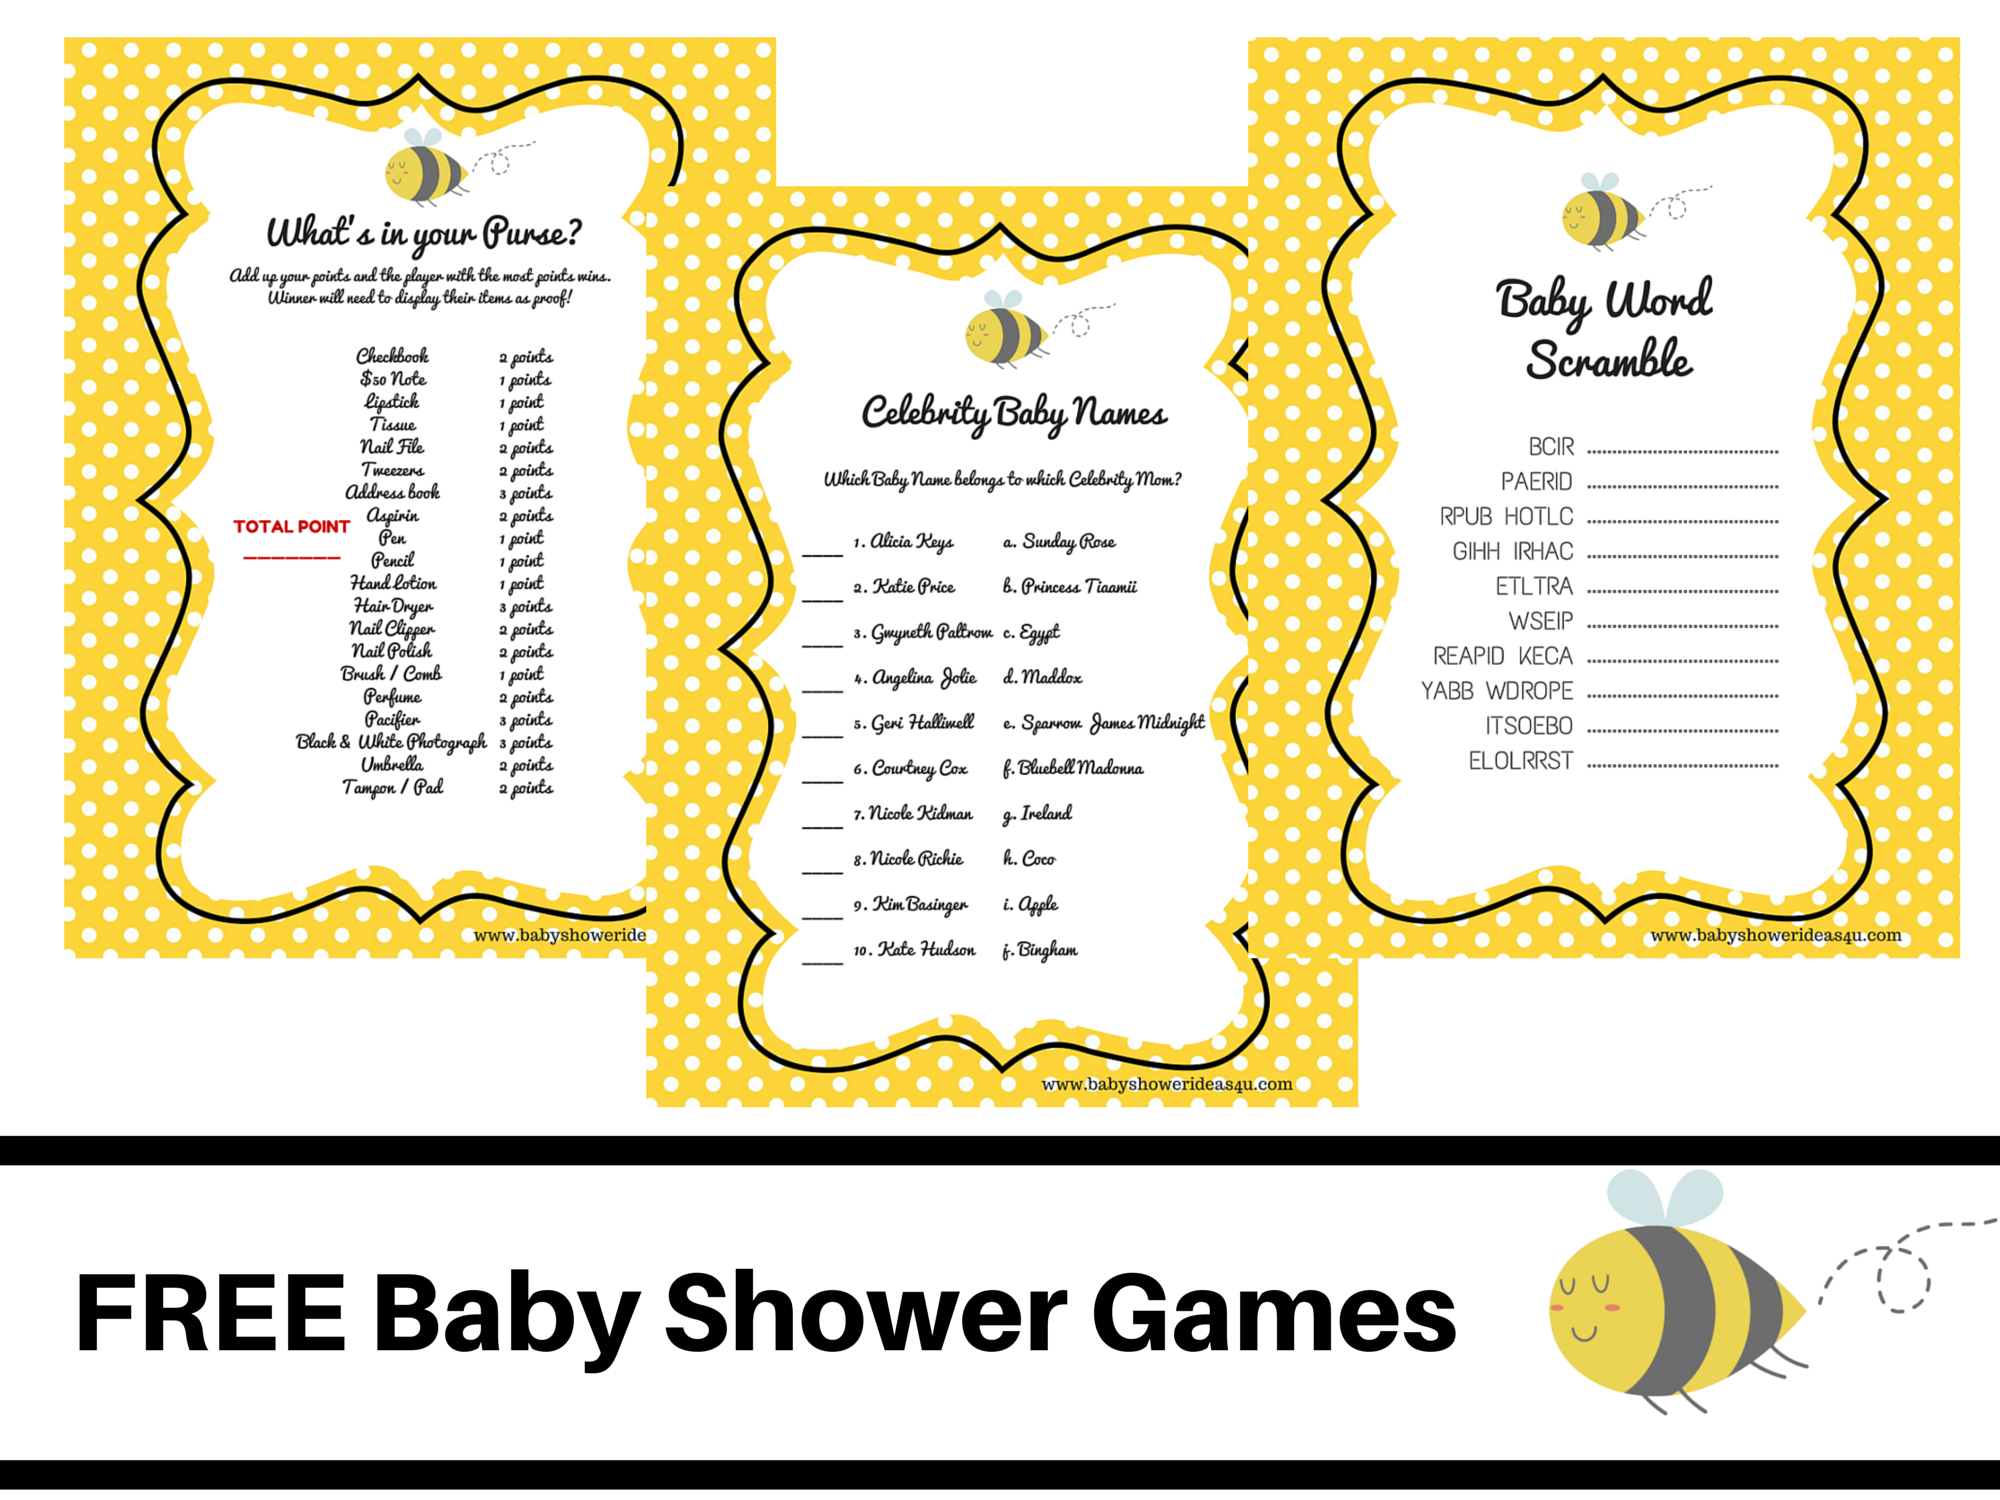 What Will It Bee Theme Baby Shower FREE PRINTABLE BABY SHOWER GAMES Word Scramble Celebrity Whats In Your Purse